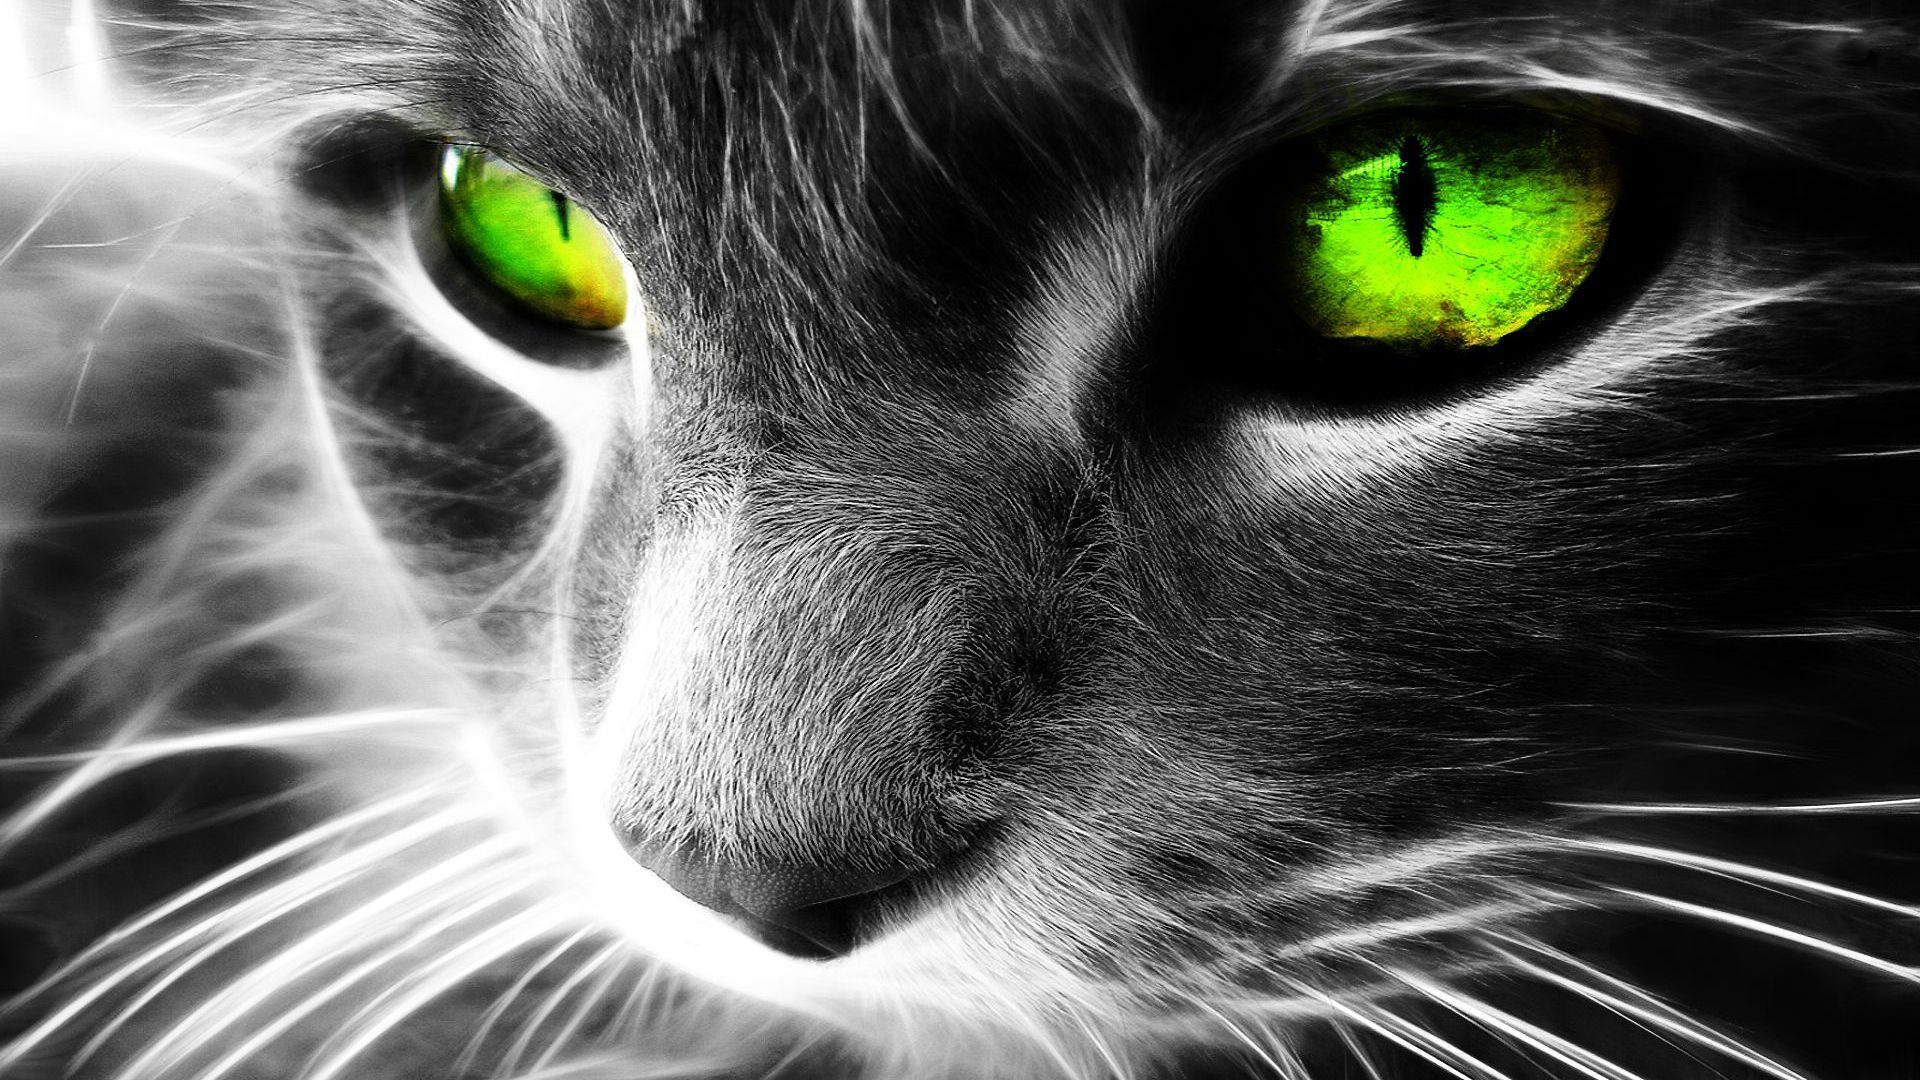 HD Wallpaper Animal Cats 1080P Download 1920x1080